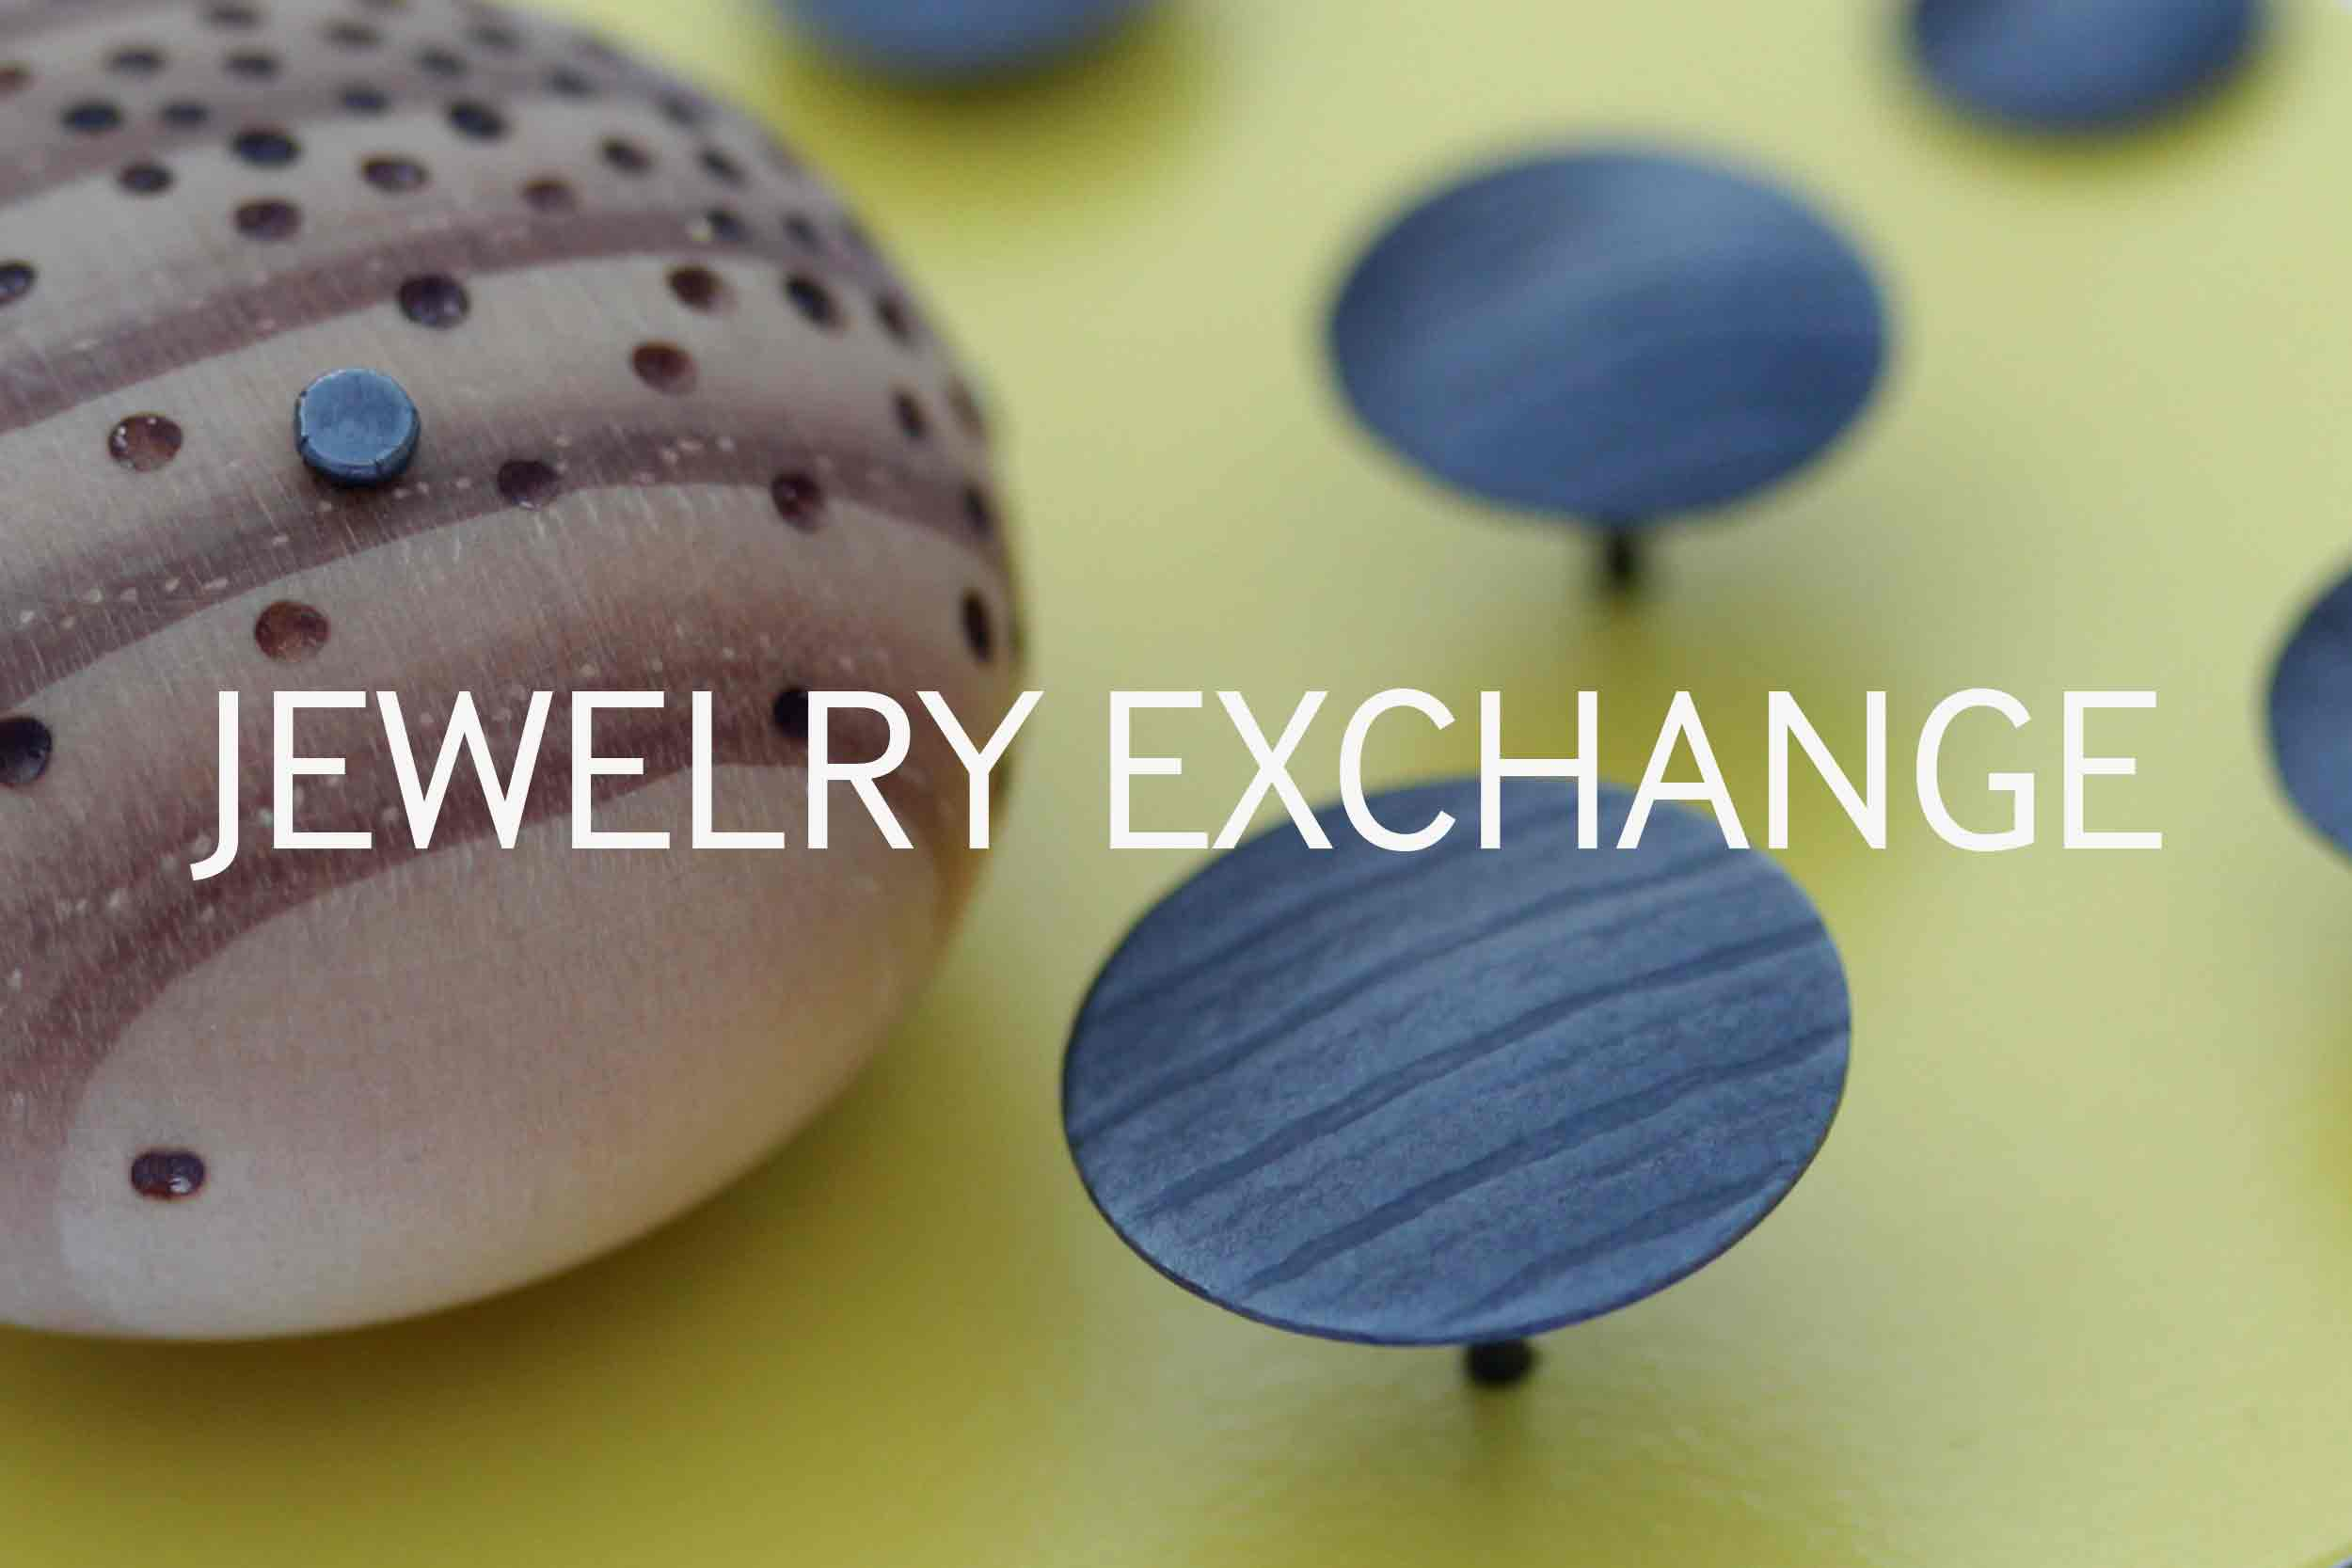 jewelry-exchange.jpg